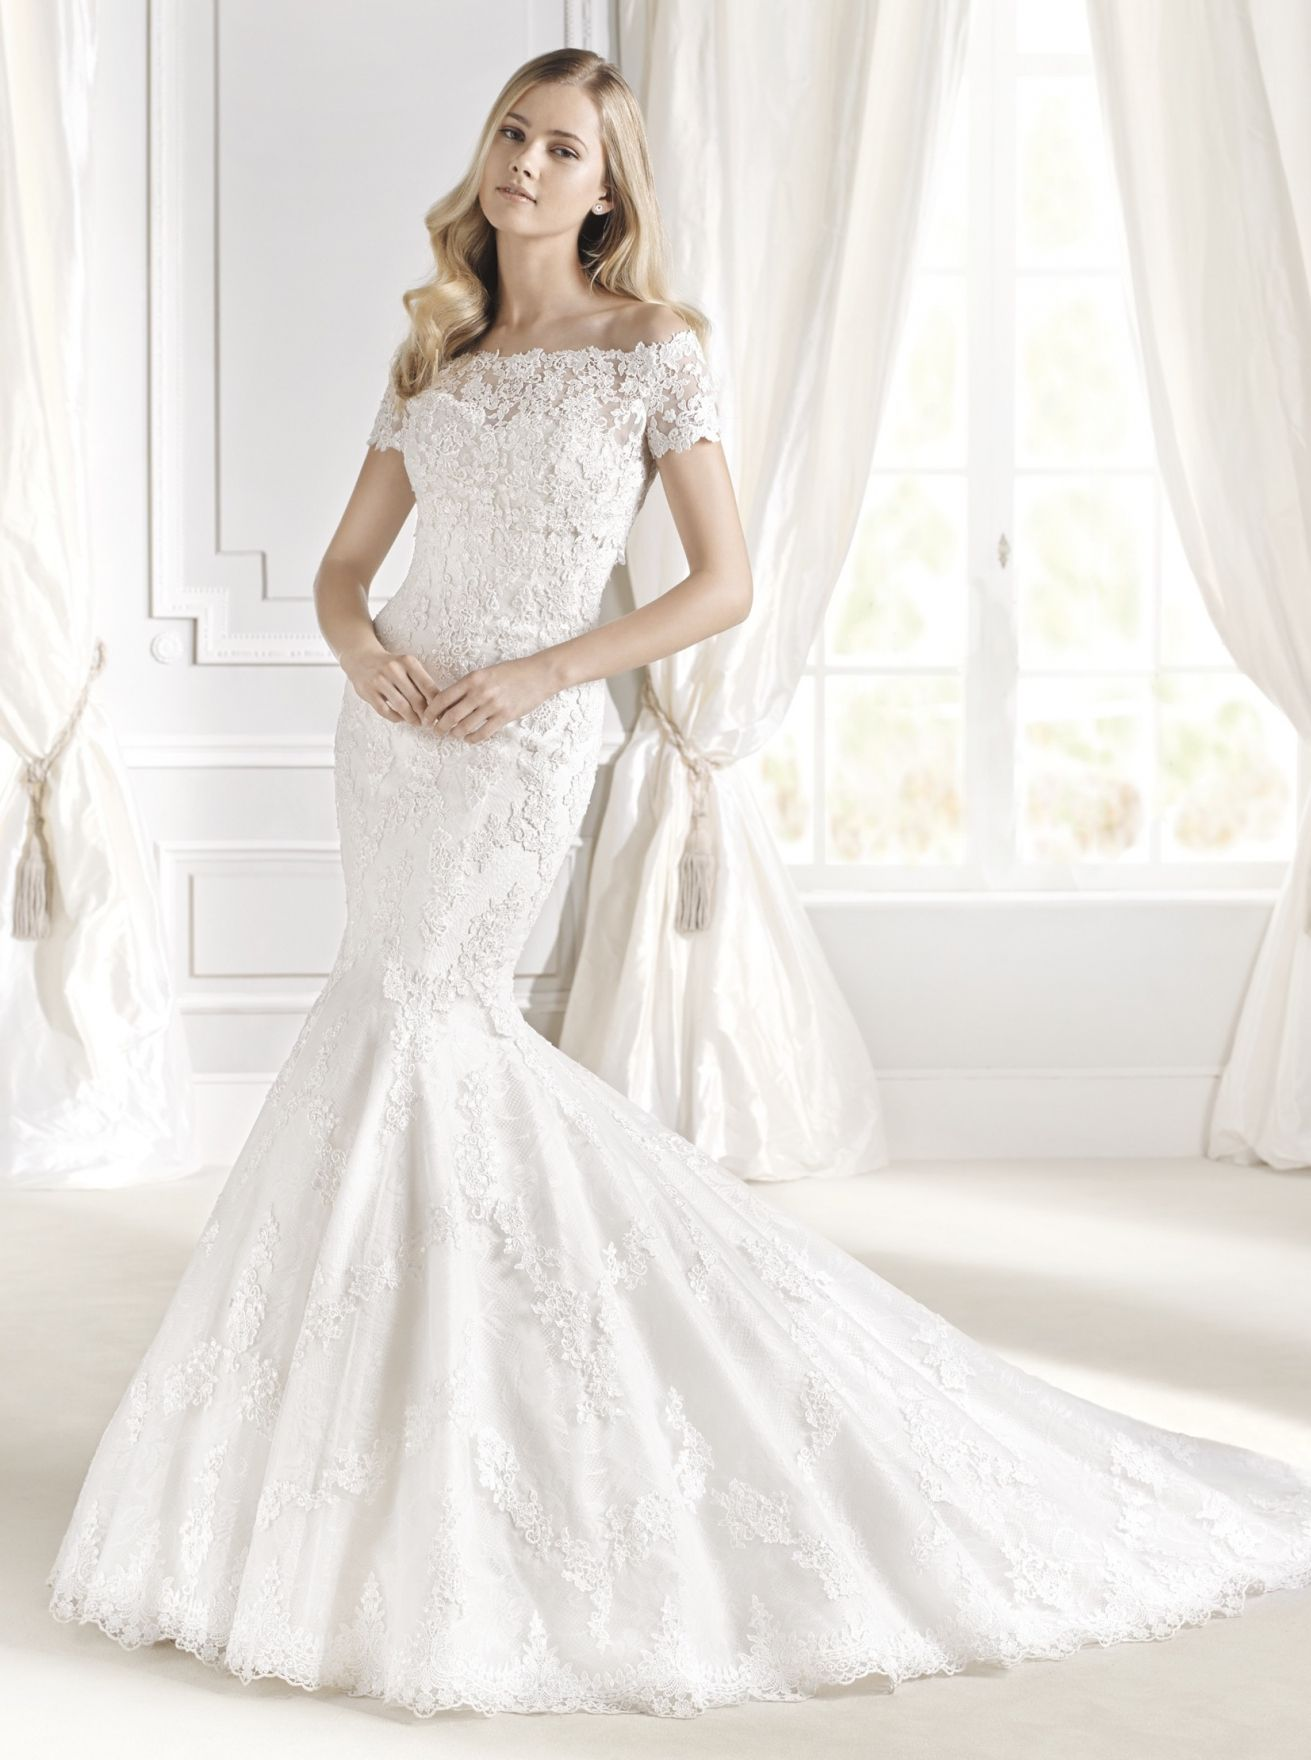 How much are wedding dresses   How Much are La Sposa Wedding Dresses  Wedding Dresses for